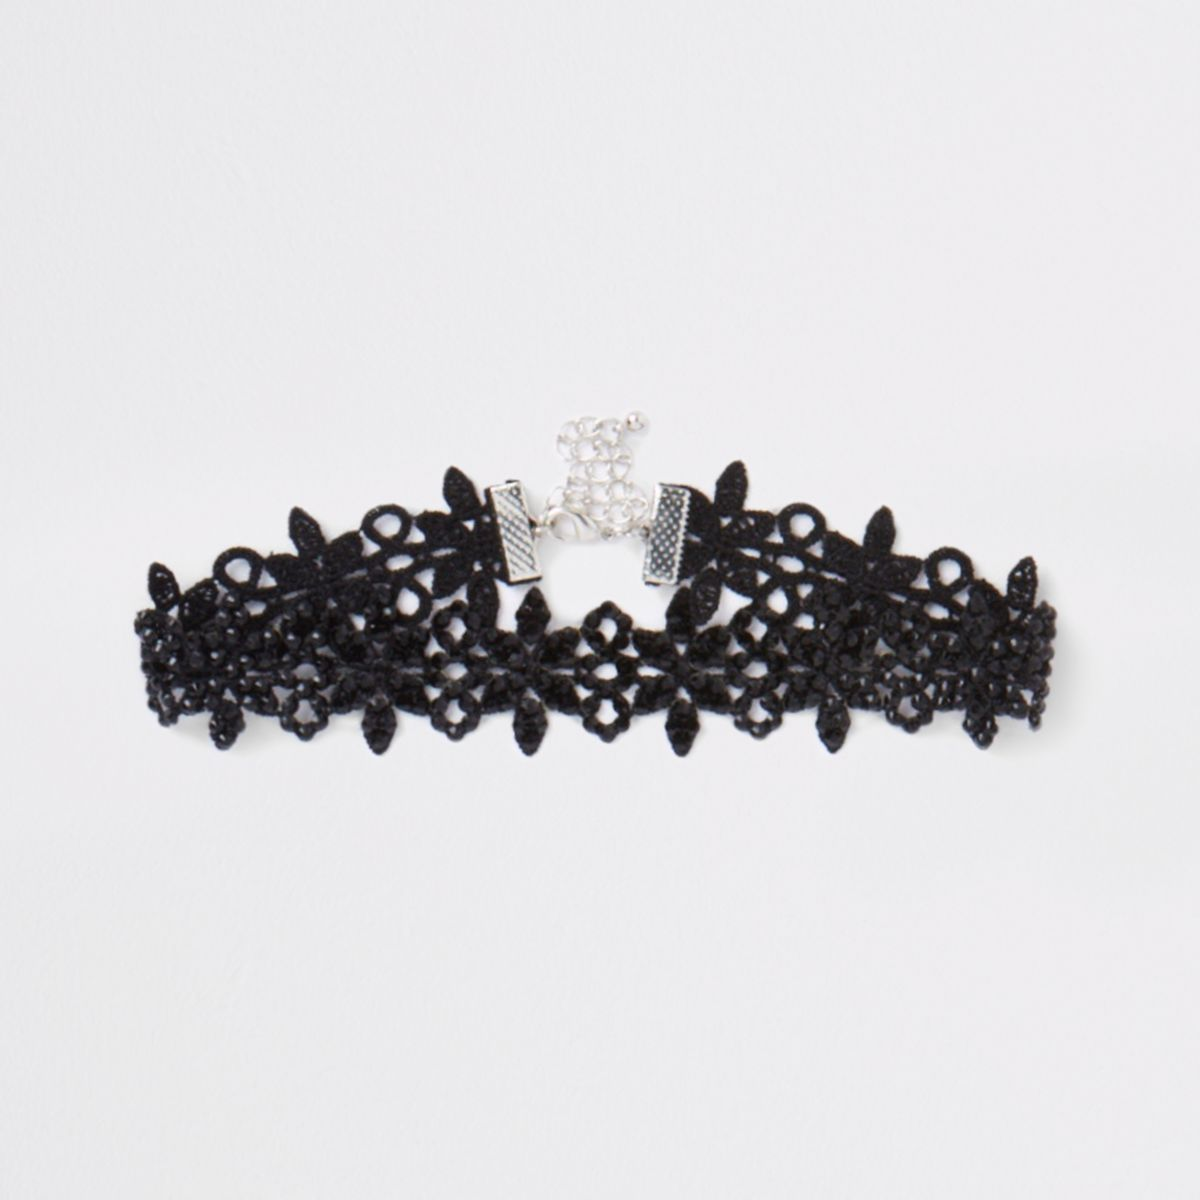 Black lace embellished choker